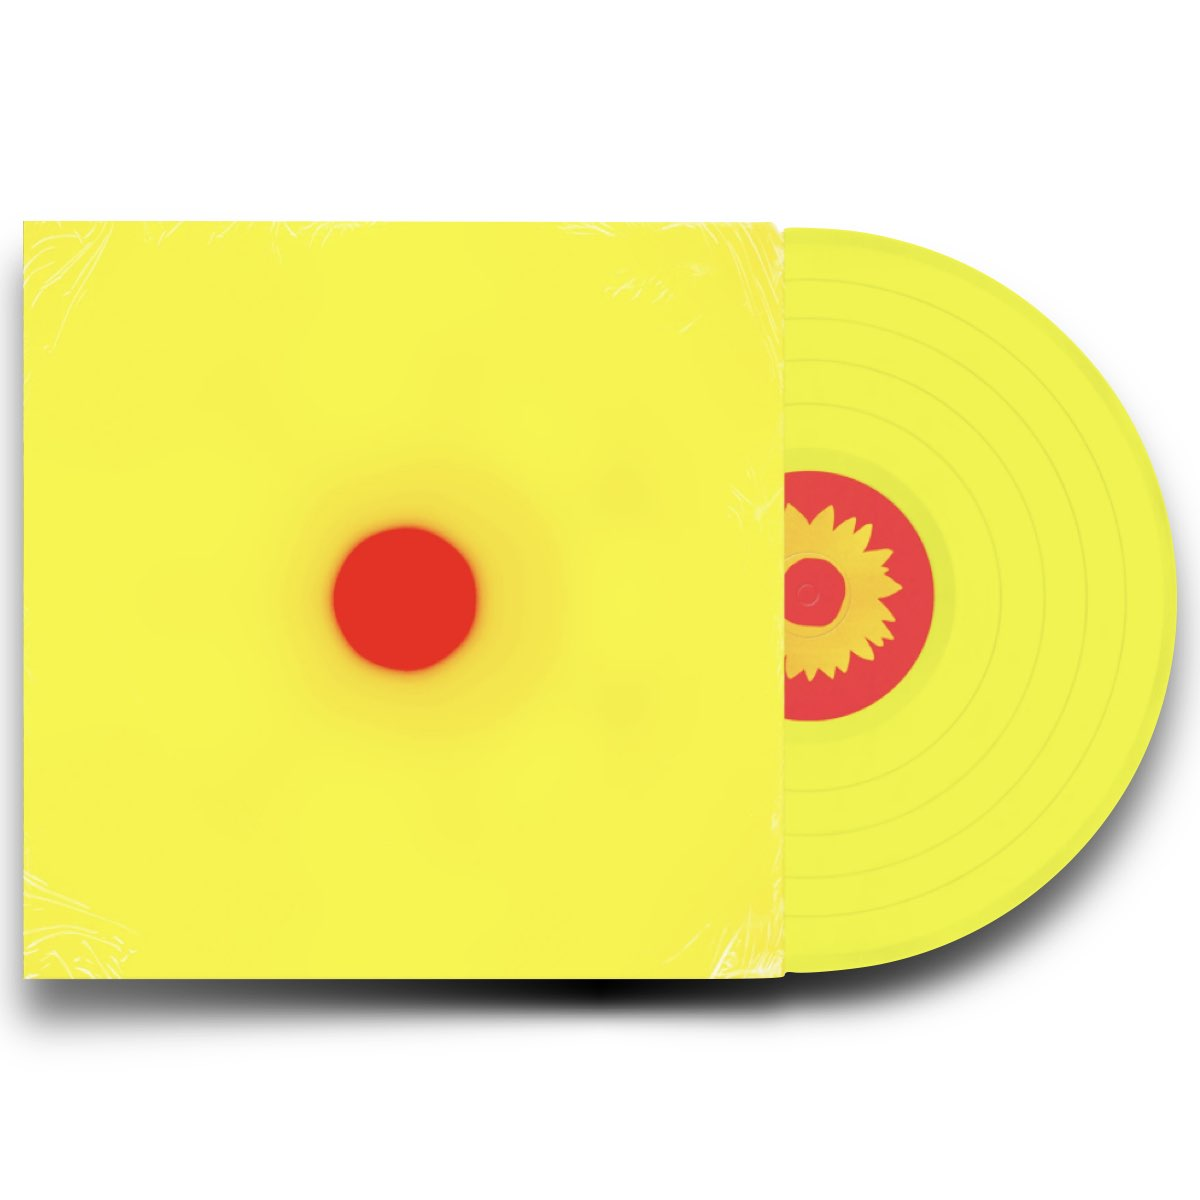 The Maine - XOXO - From Love and Anxiety in Real Time [Limited Yellow Vinyl]